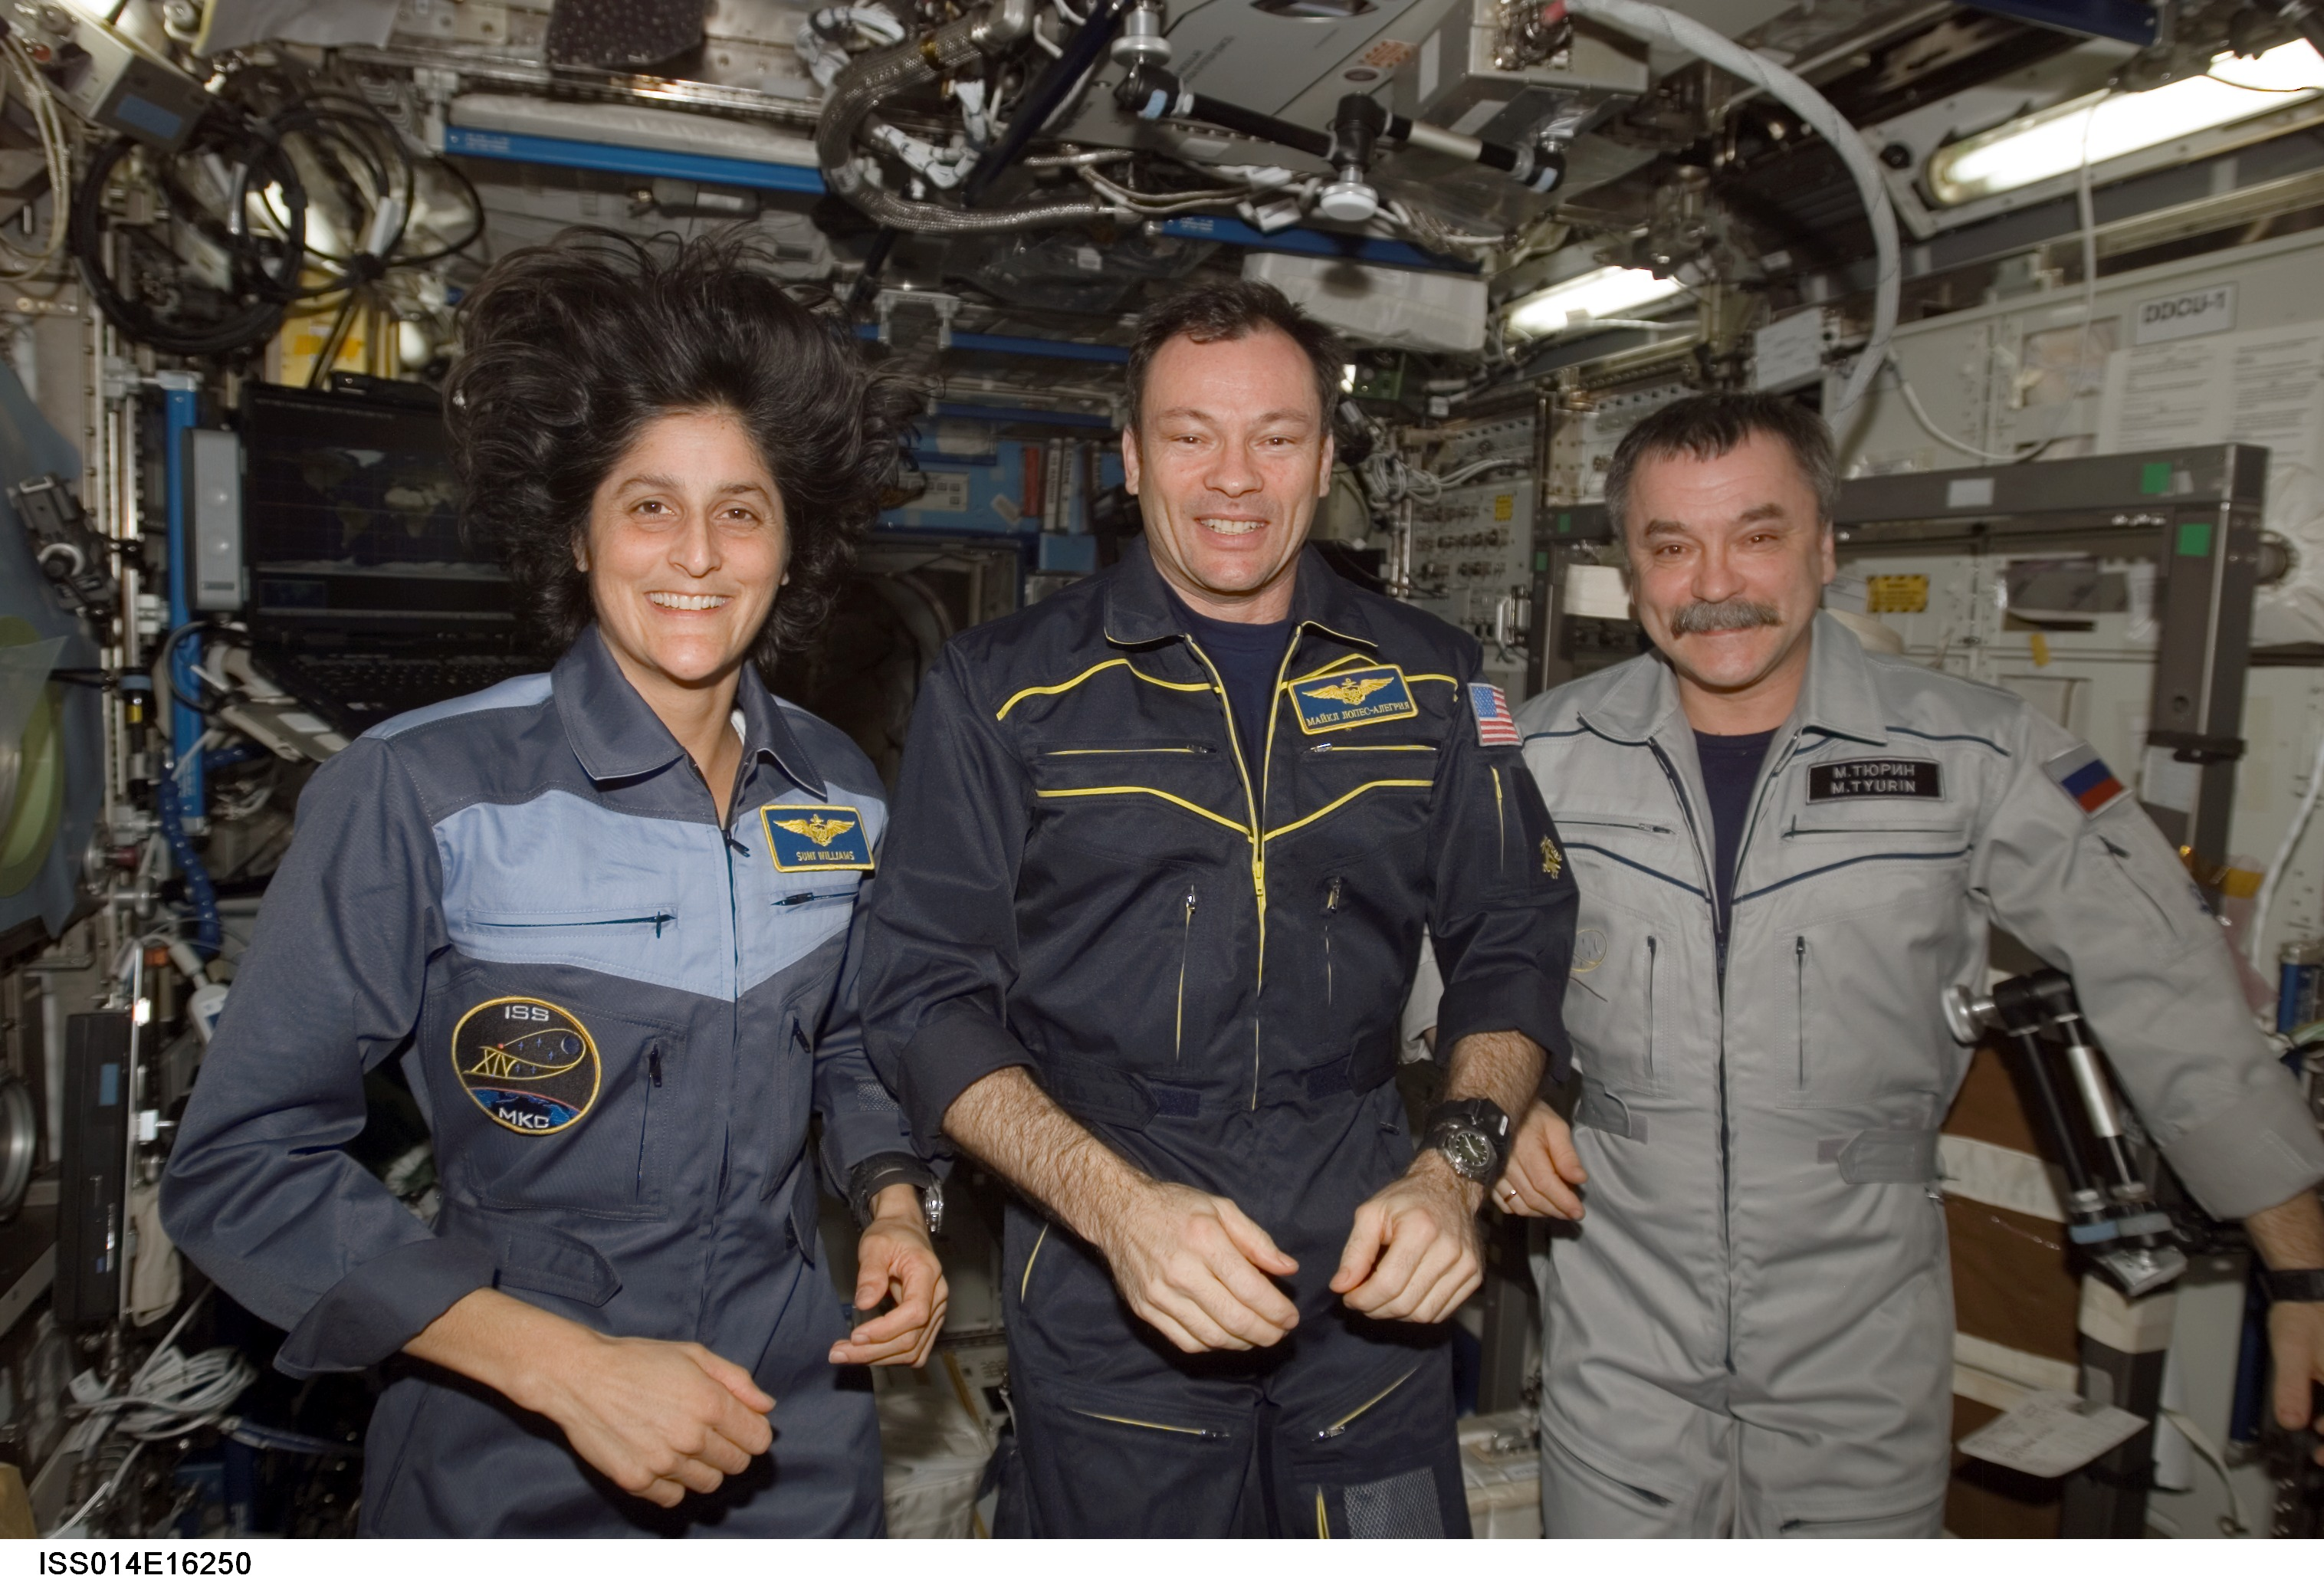 Sunita Williams, Michael Lopez-Alegria and Mikhail Tyurin. Image credit NASA